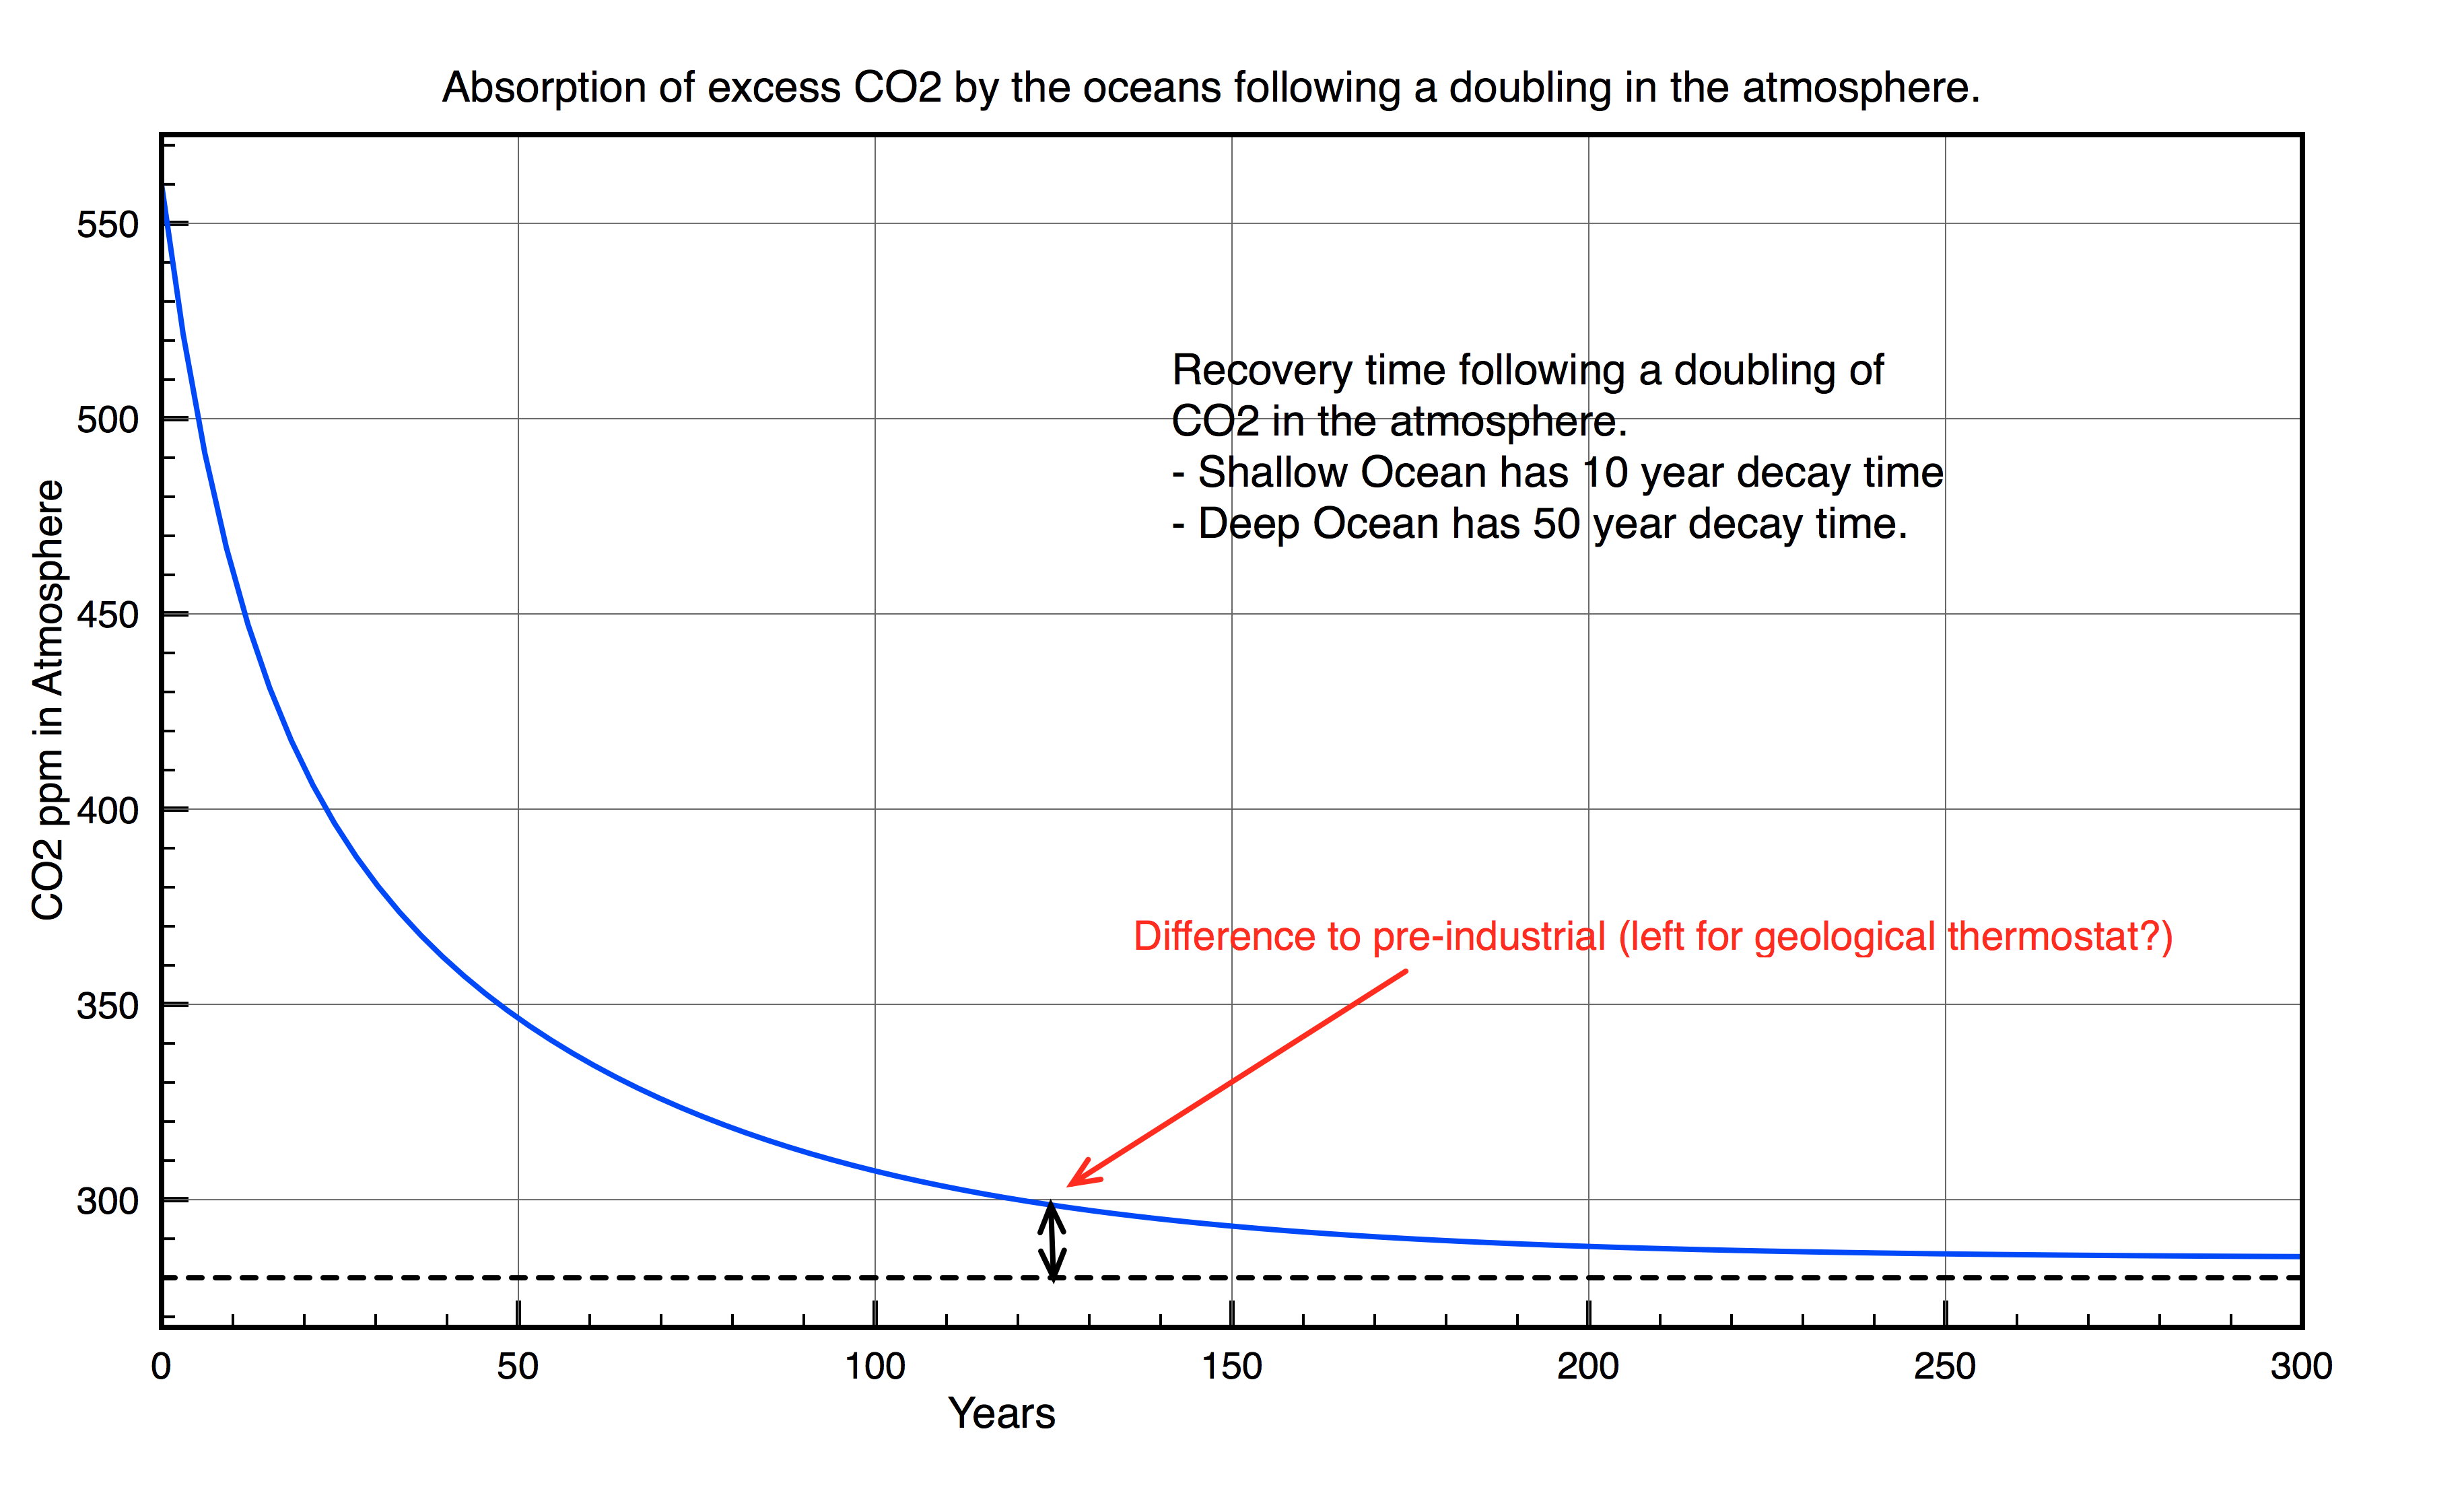 Fall in atmospheric CO2 levels following a doubling of pre-industrial values. Assumes zero emissions thereafter.